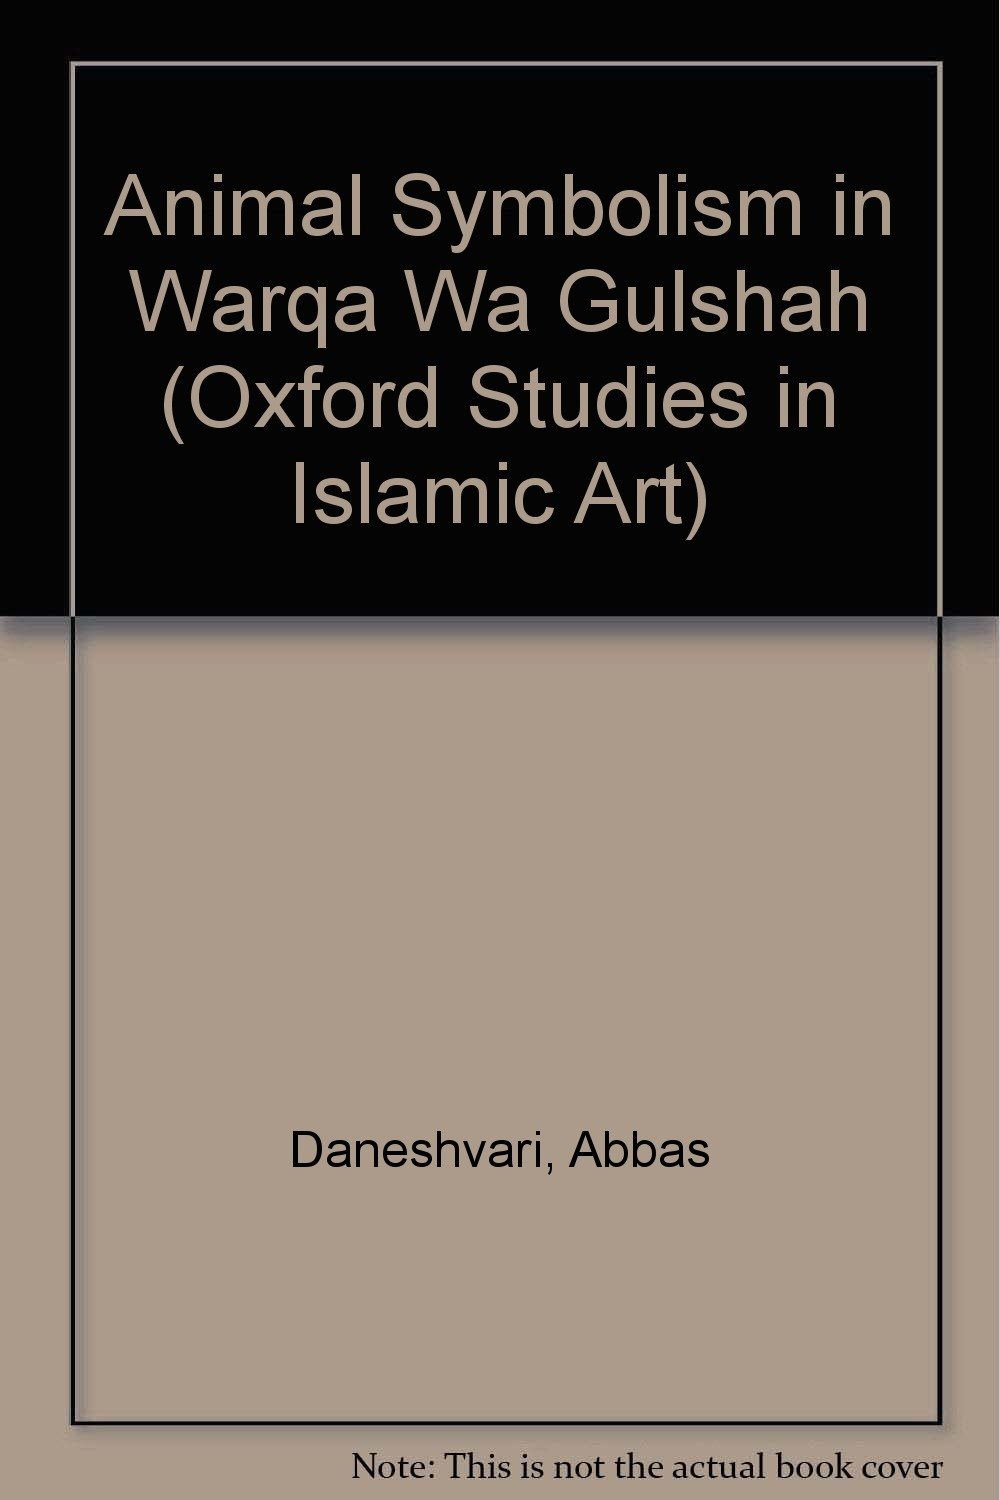 Animal Symbolism In Warqa Wa Gulshah Oxford Studies In Islamic